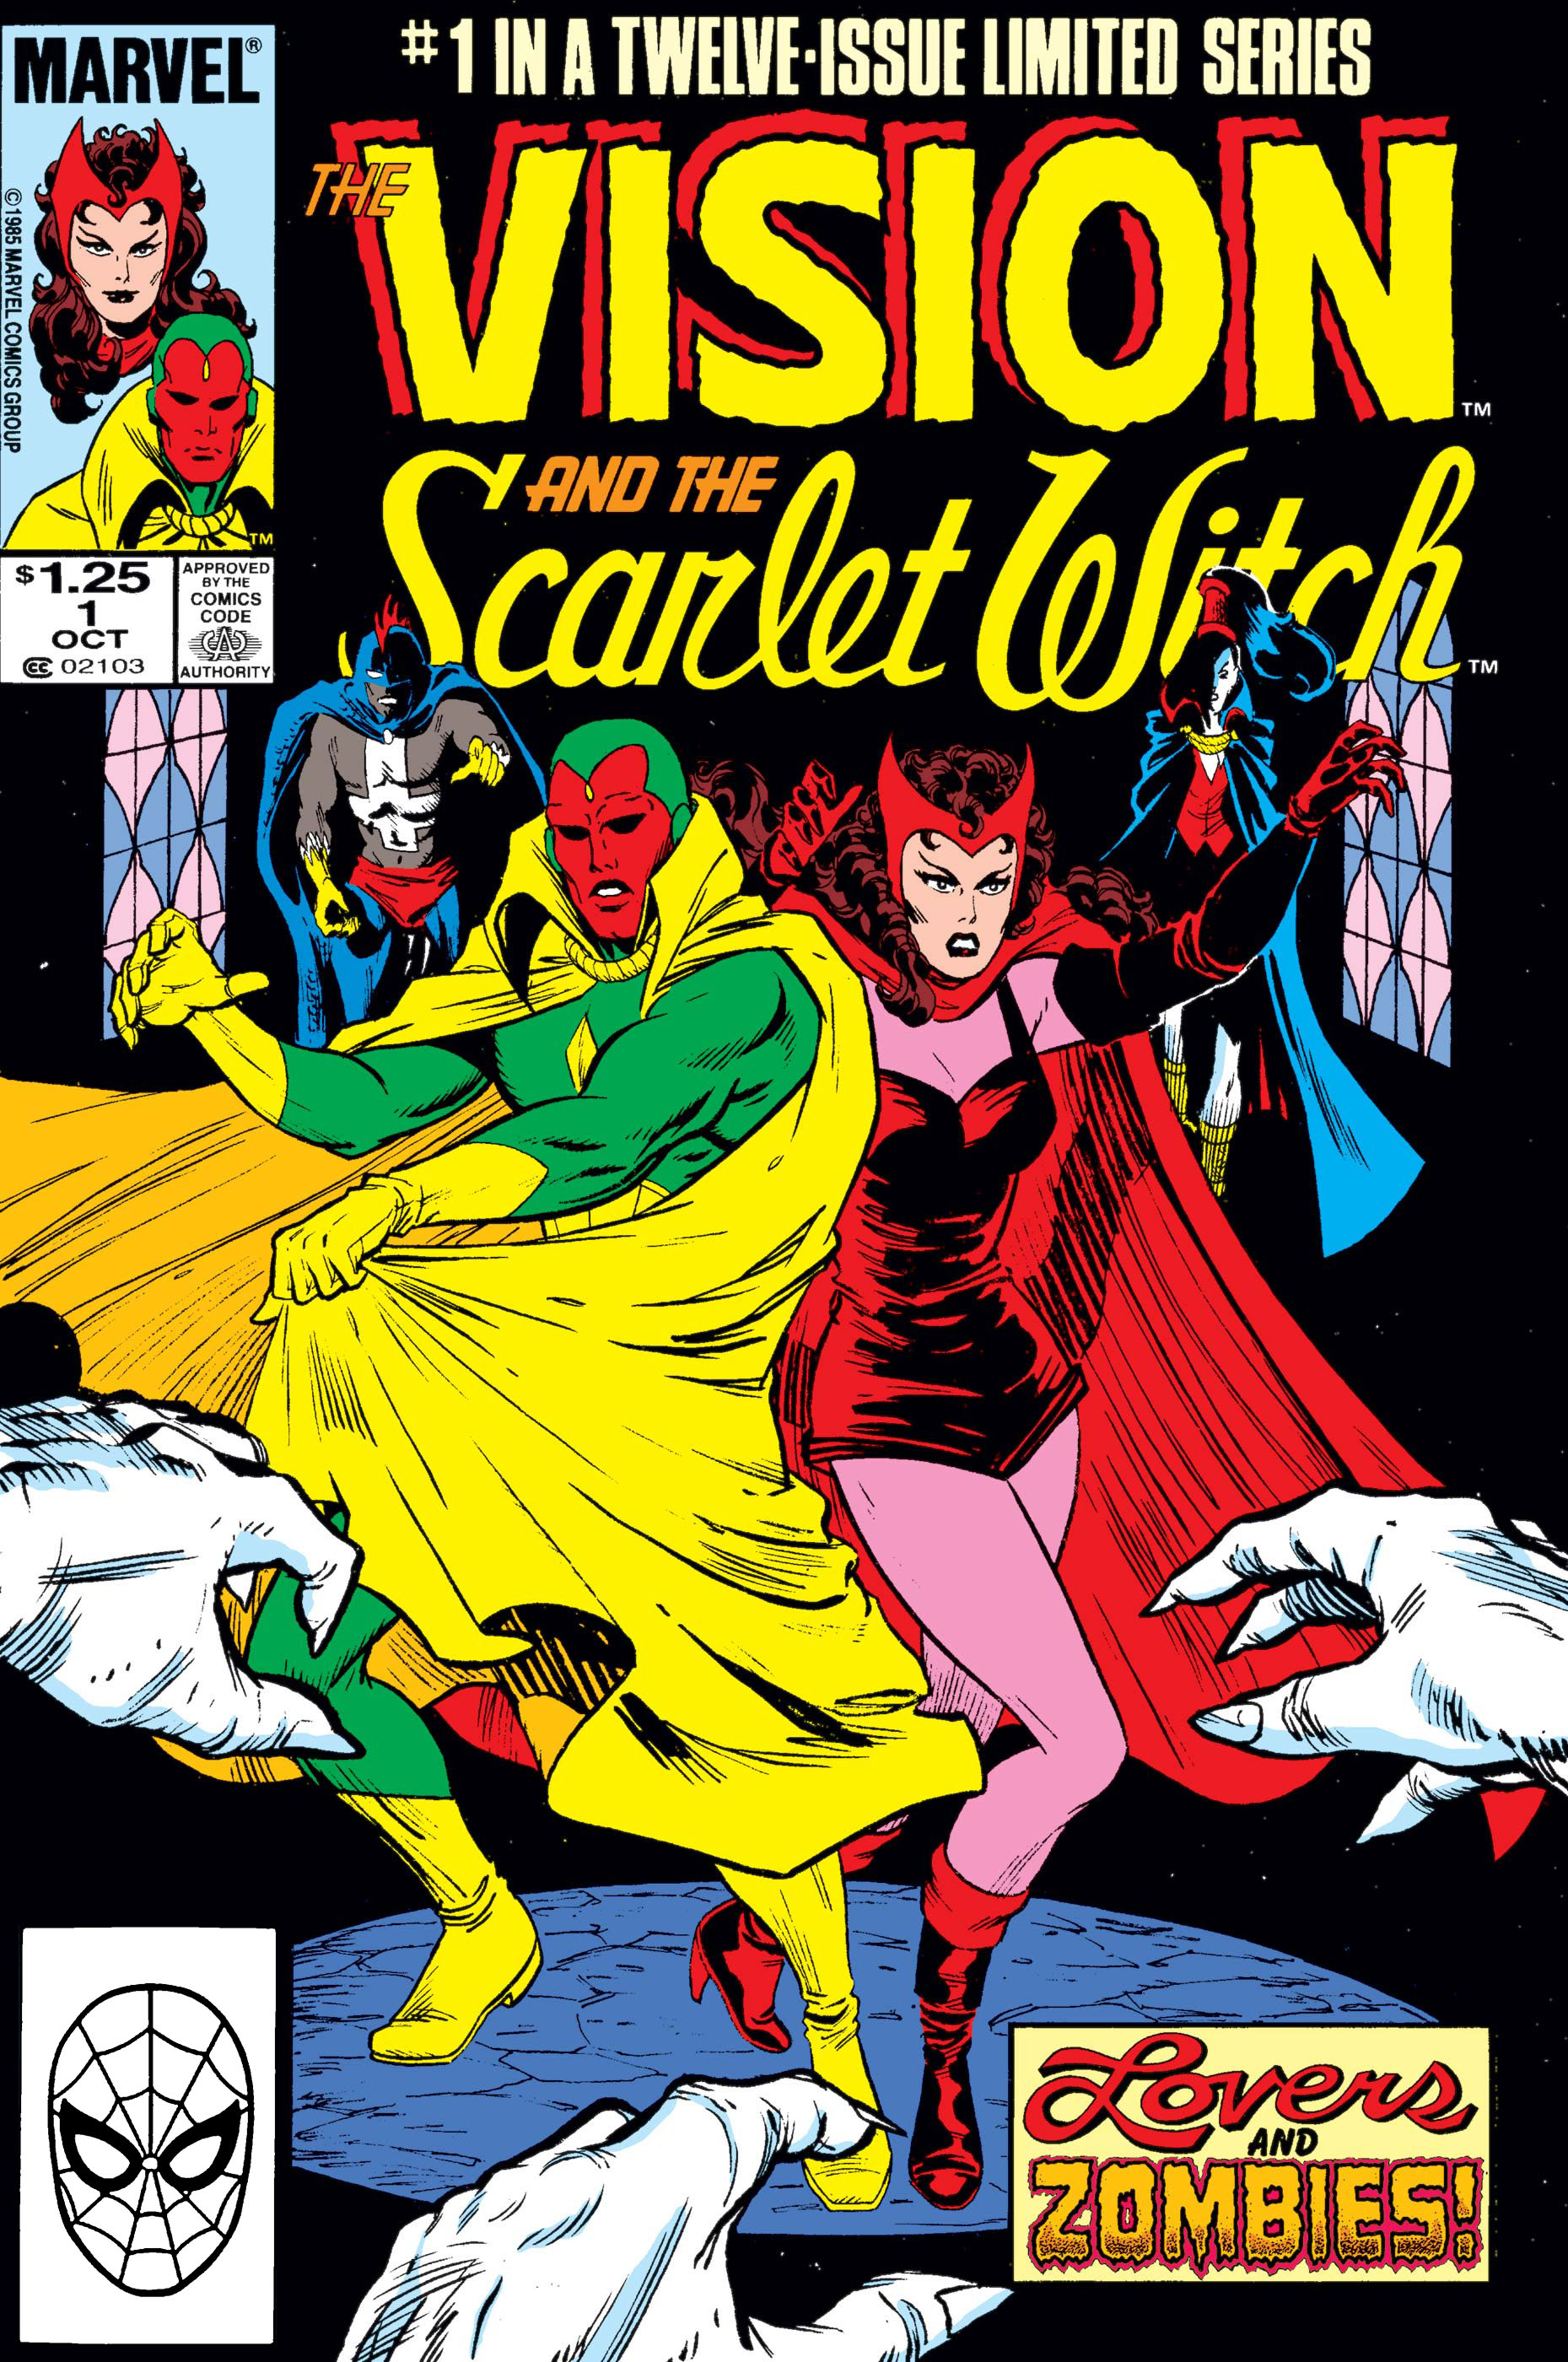 Vision and the Scarlet Witch (1985) #1 | Comic Issues | Marvel